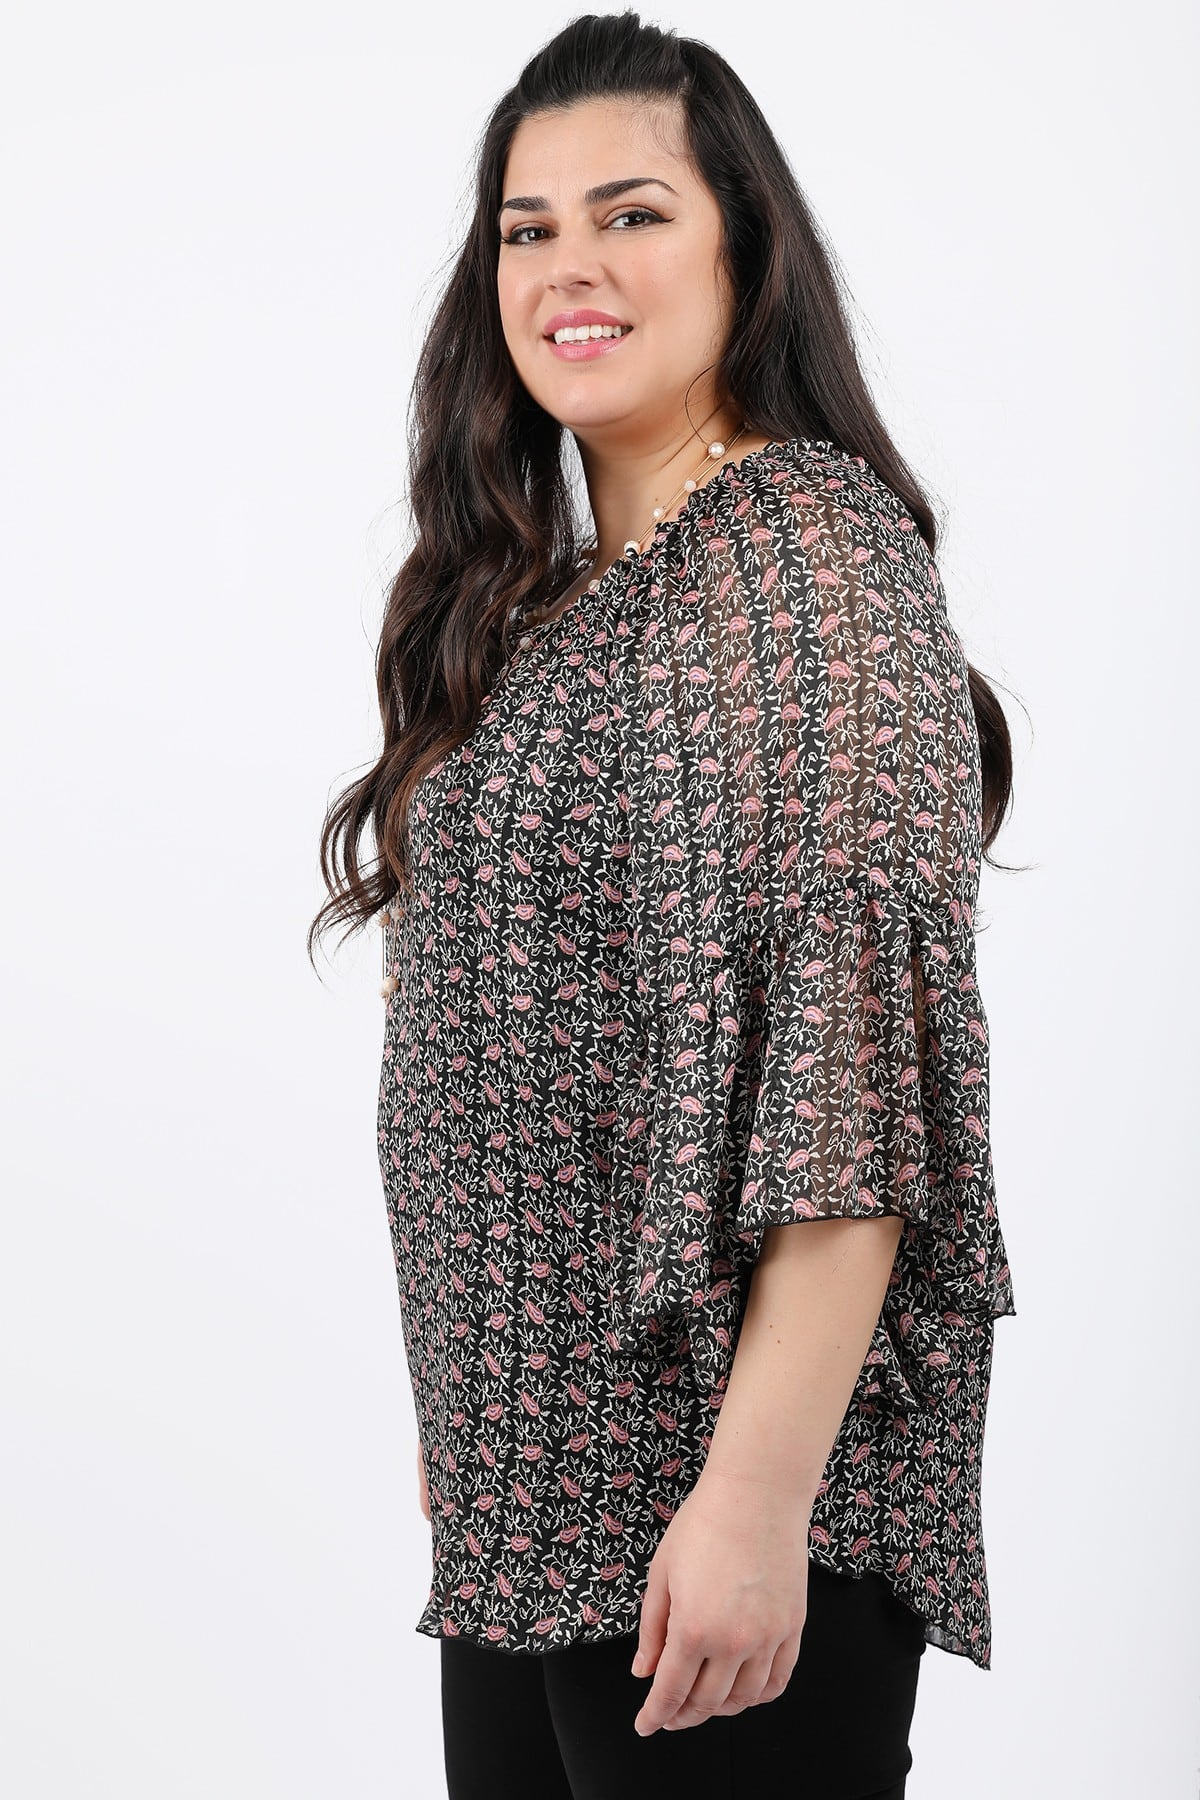 Floral blouse with elastic neckline